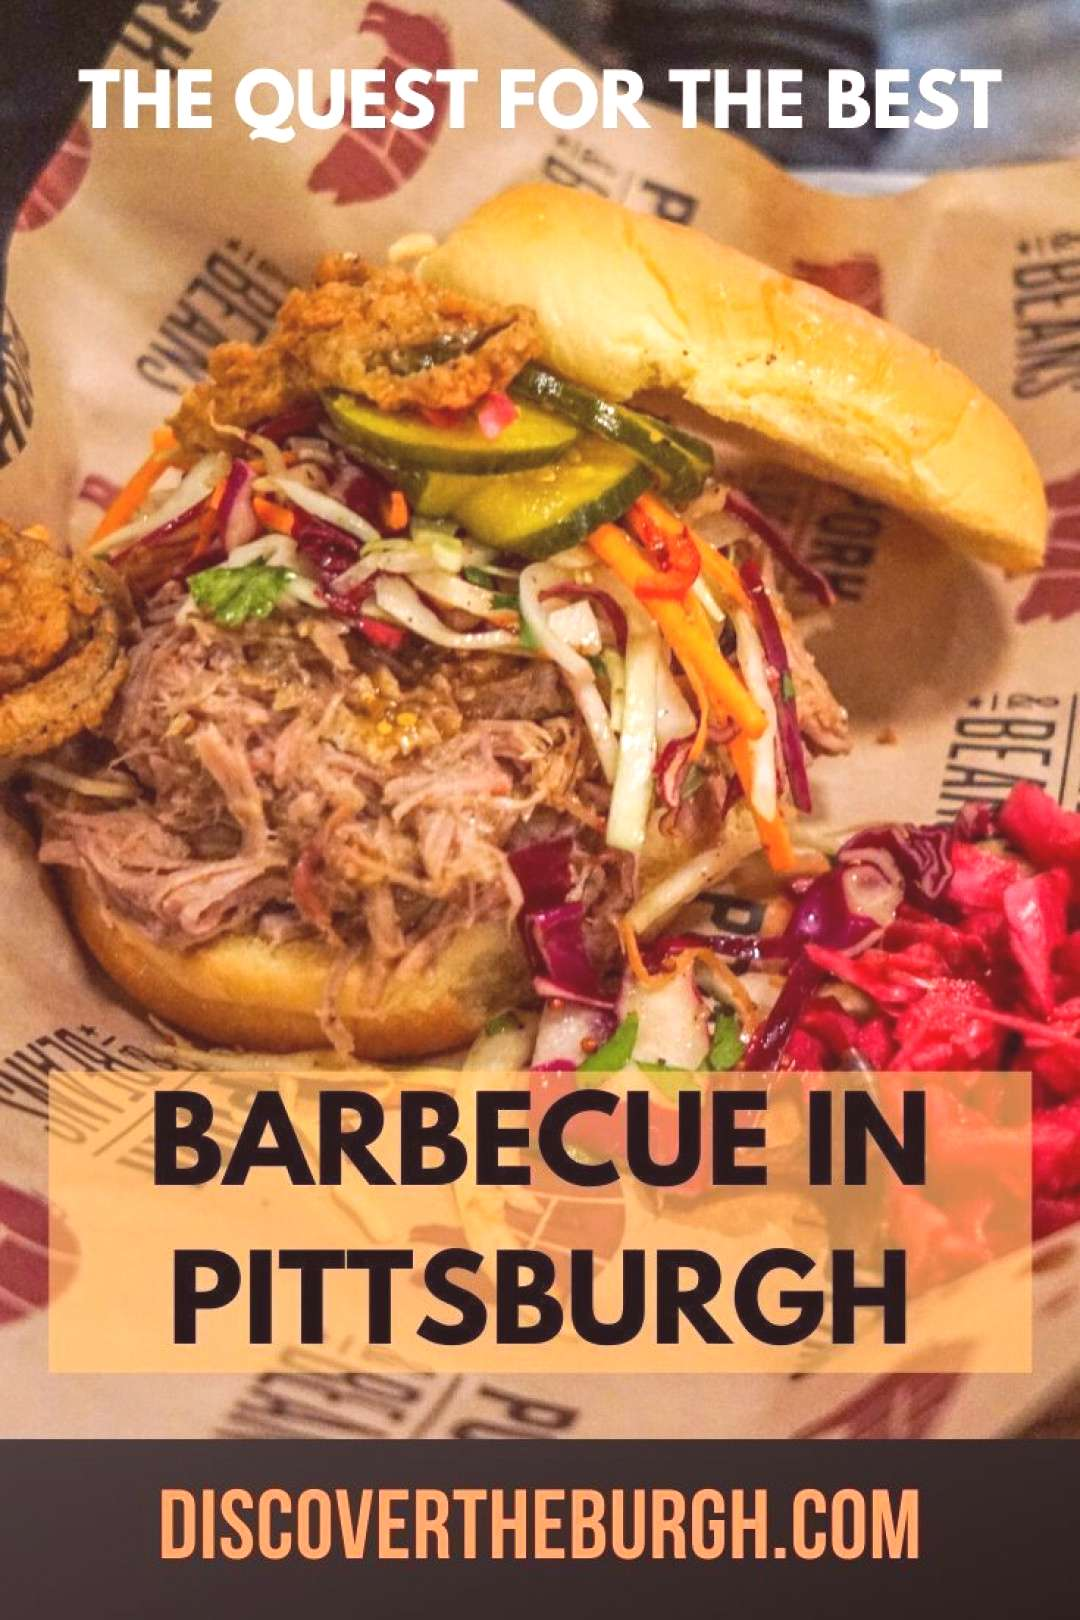 The Quest for the Best Barbecue in Pittsburgh Looking for the best barbecue in Pittsburgh? This gui